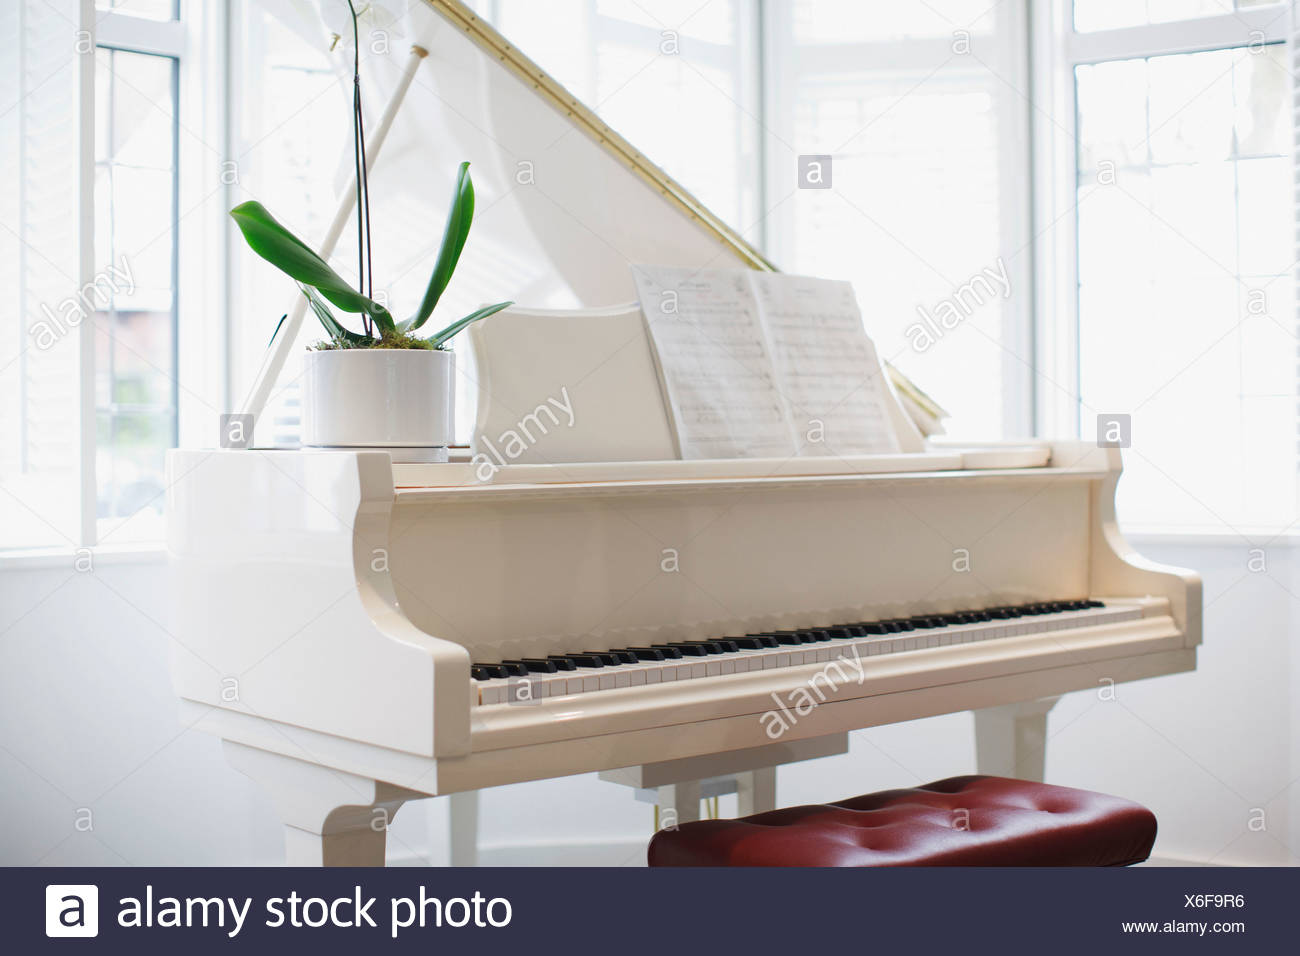 Grand Piano Bench Stock Photos & Grand Piano Bench Stock Images - Alamy